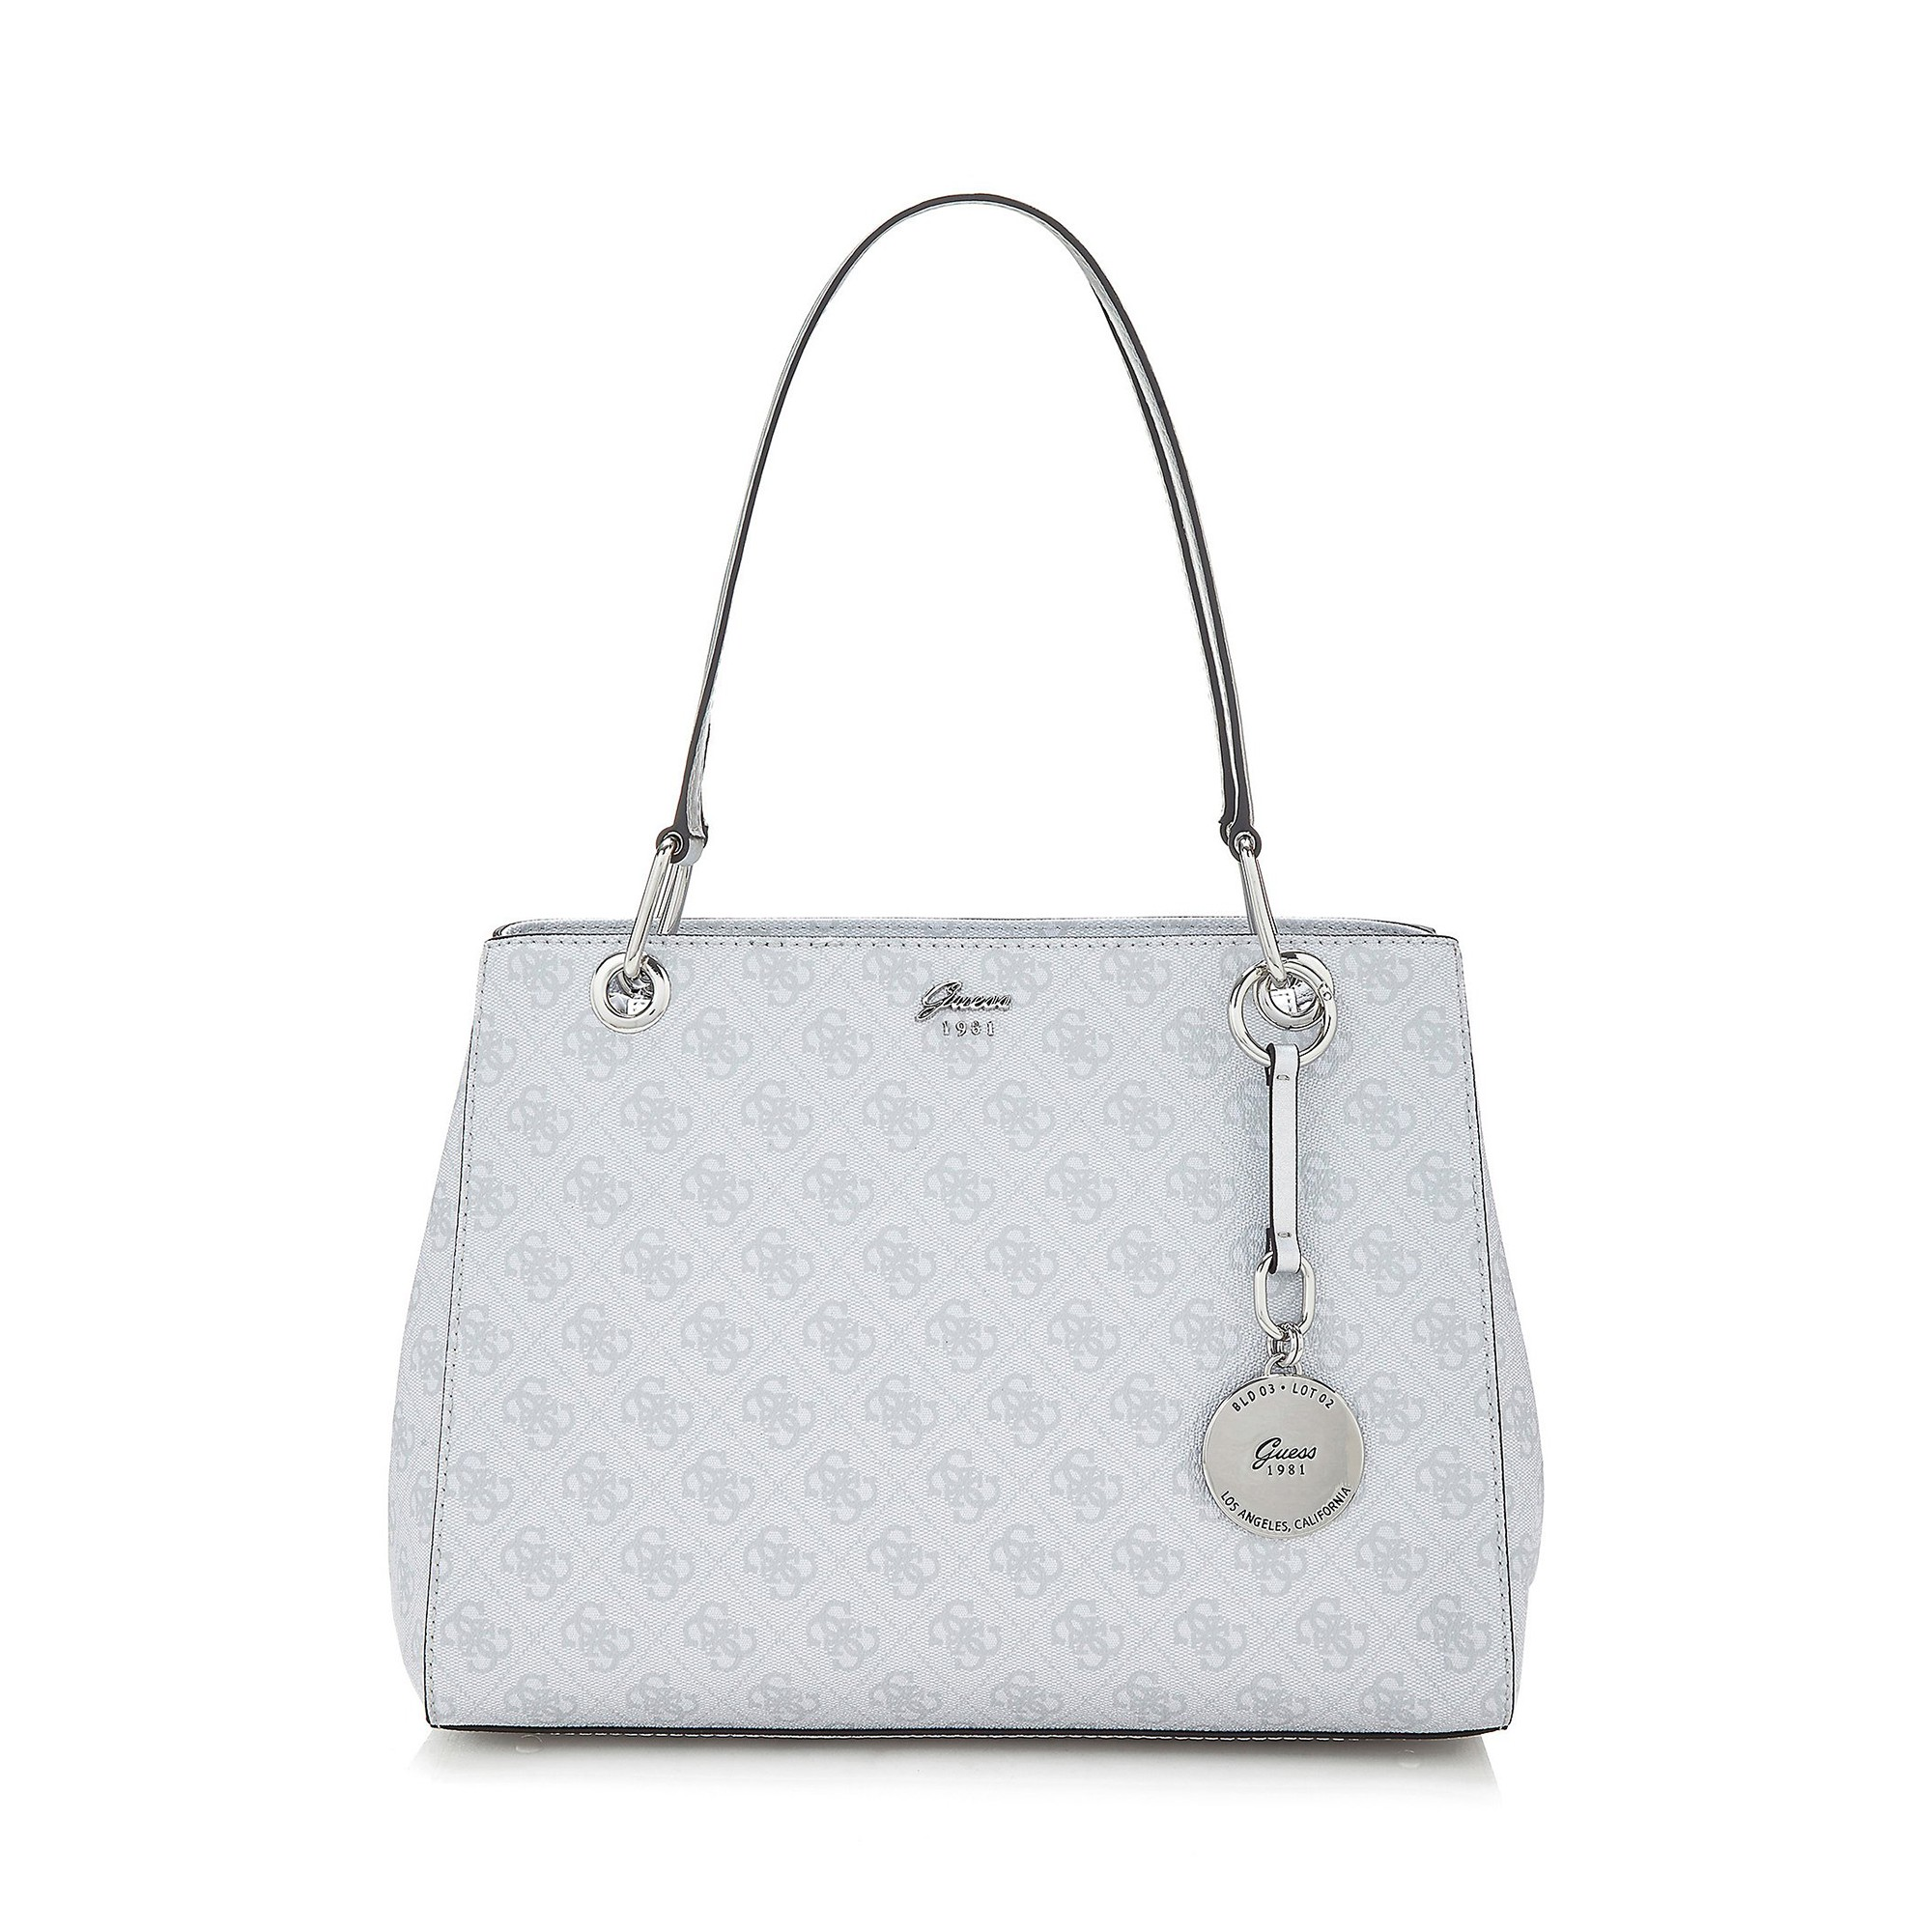 save off ec991 e2df8 GUESS Tasche HWSY696509 ICW ICE